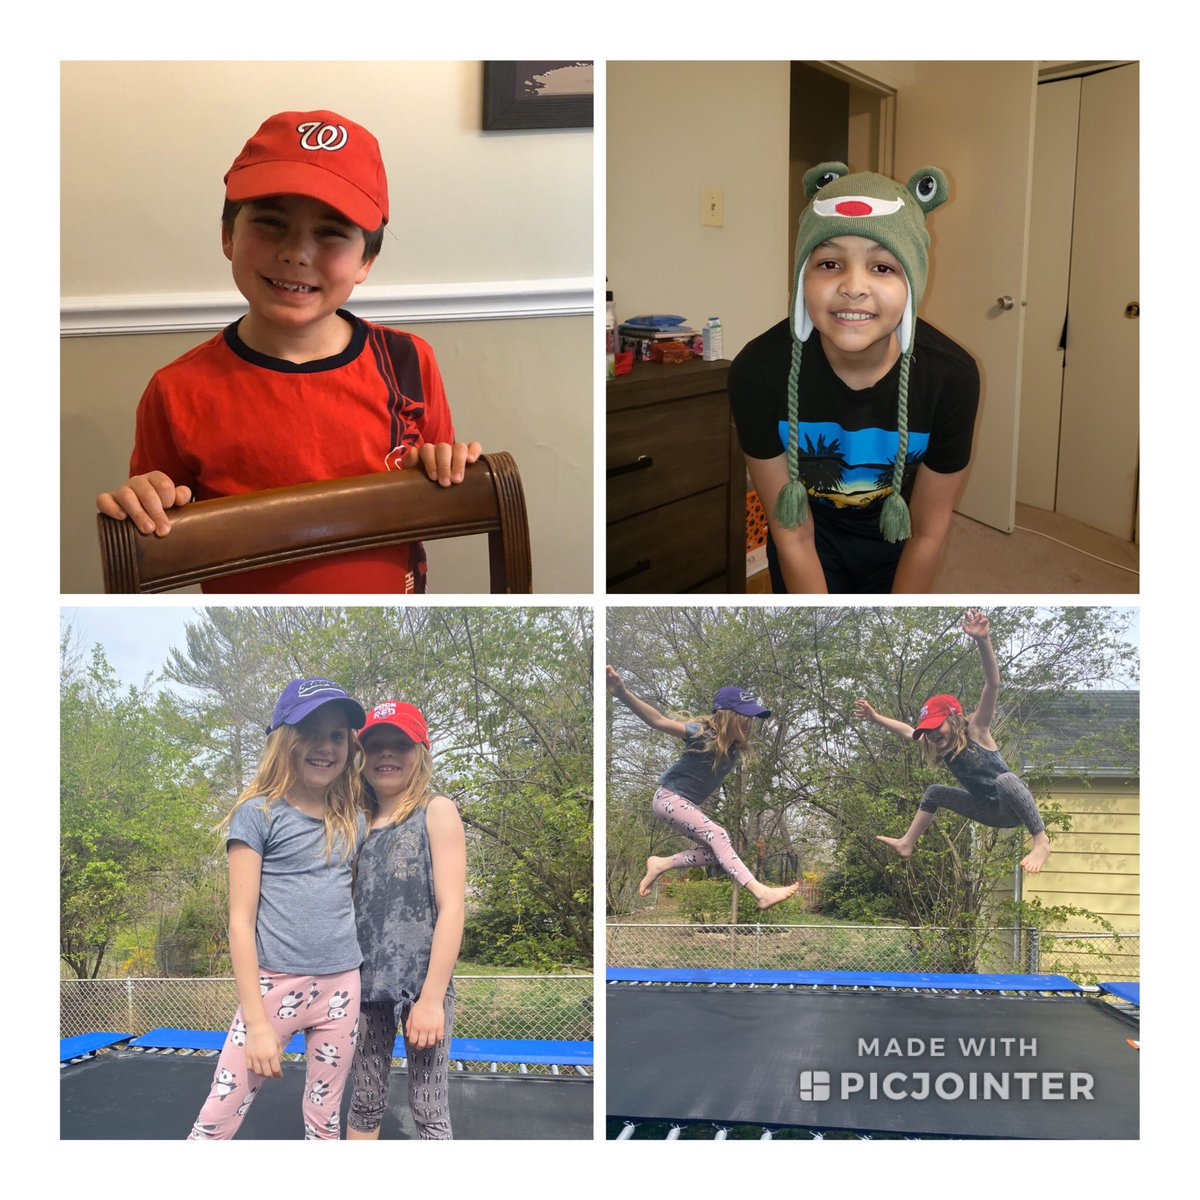 Virtual Hat day at Glebe with Glebers and folks from APS Central Office! Thank you all for joining our spirit!<a target='_blank' href='http://twitter.com/glebepta'>@glebepta</a> <a target='_blank' href='http://twitter.com/APSVirginia'>@APSVirginia</a> <a target='_blank' href='http://search.twitter.com/search?q=GlebeEagles'><a target='_blank' href='https://twitter.com/hashtag/GlebeEagles?src=hash'>#GlebeEagles</a></a> Follow along it will be many tweets! <a target='_blank' href='https://t.co/CrrA2GHTzK'>https://t.co/CrrA2GHTzK</a>